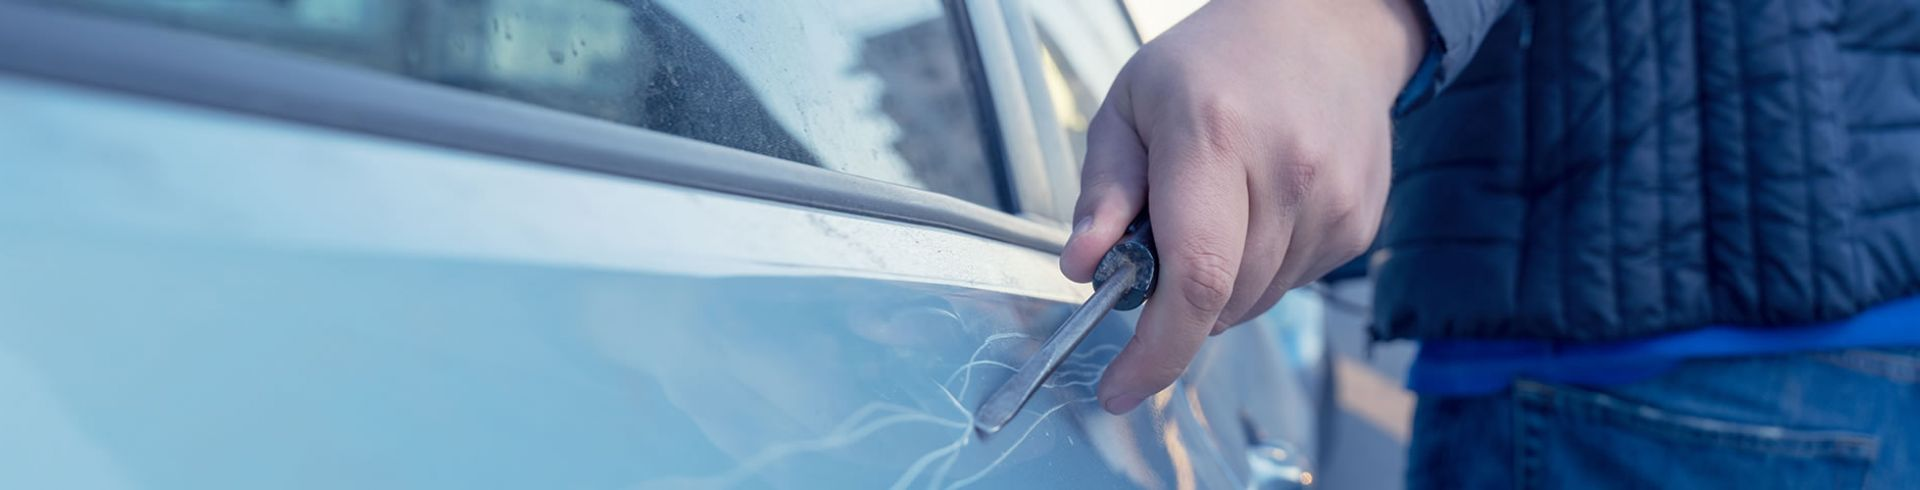 Vandal scratching car with screwdriver